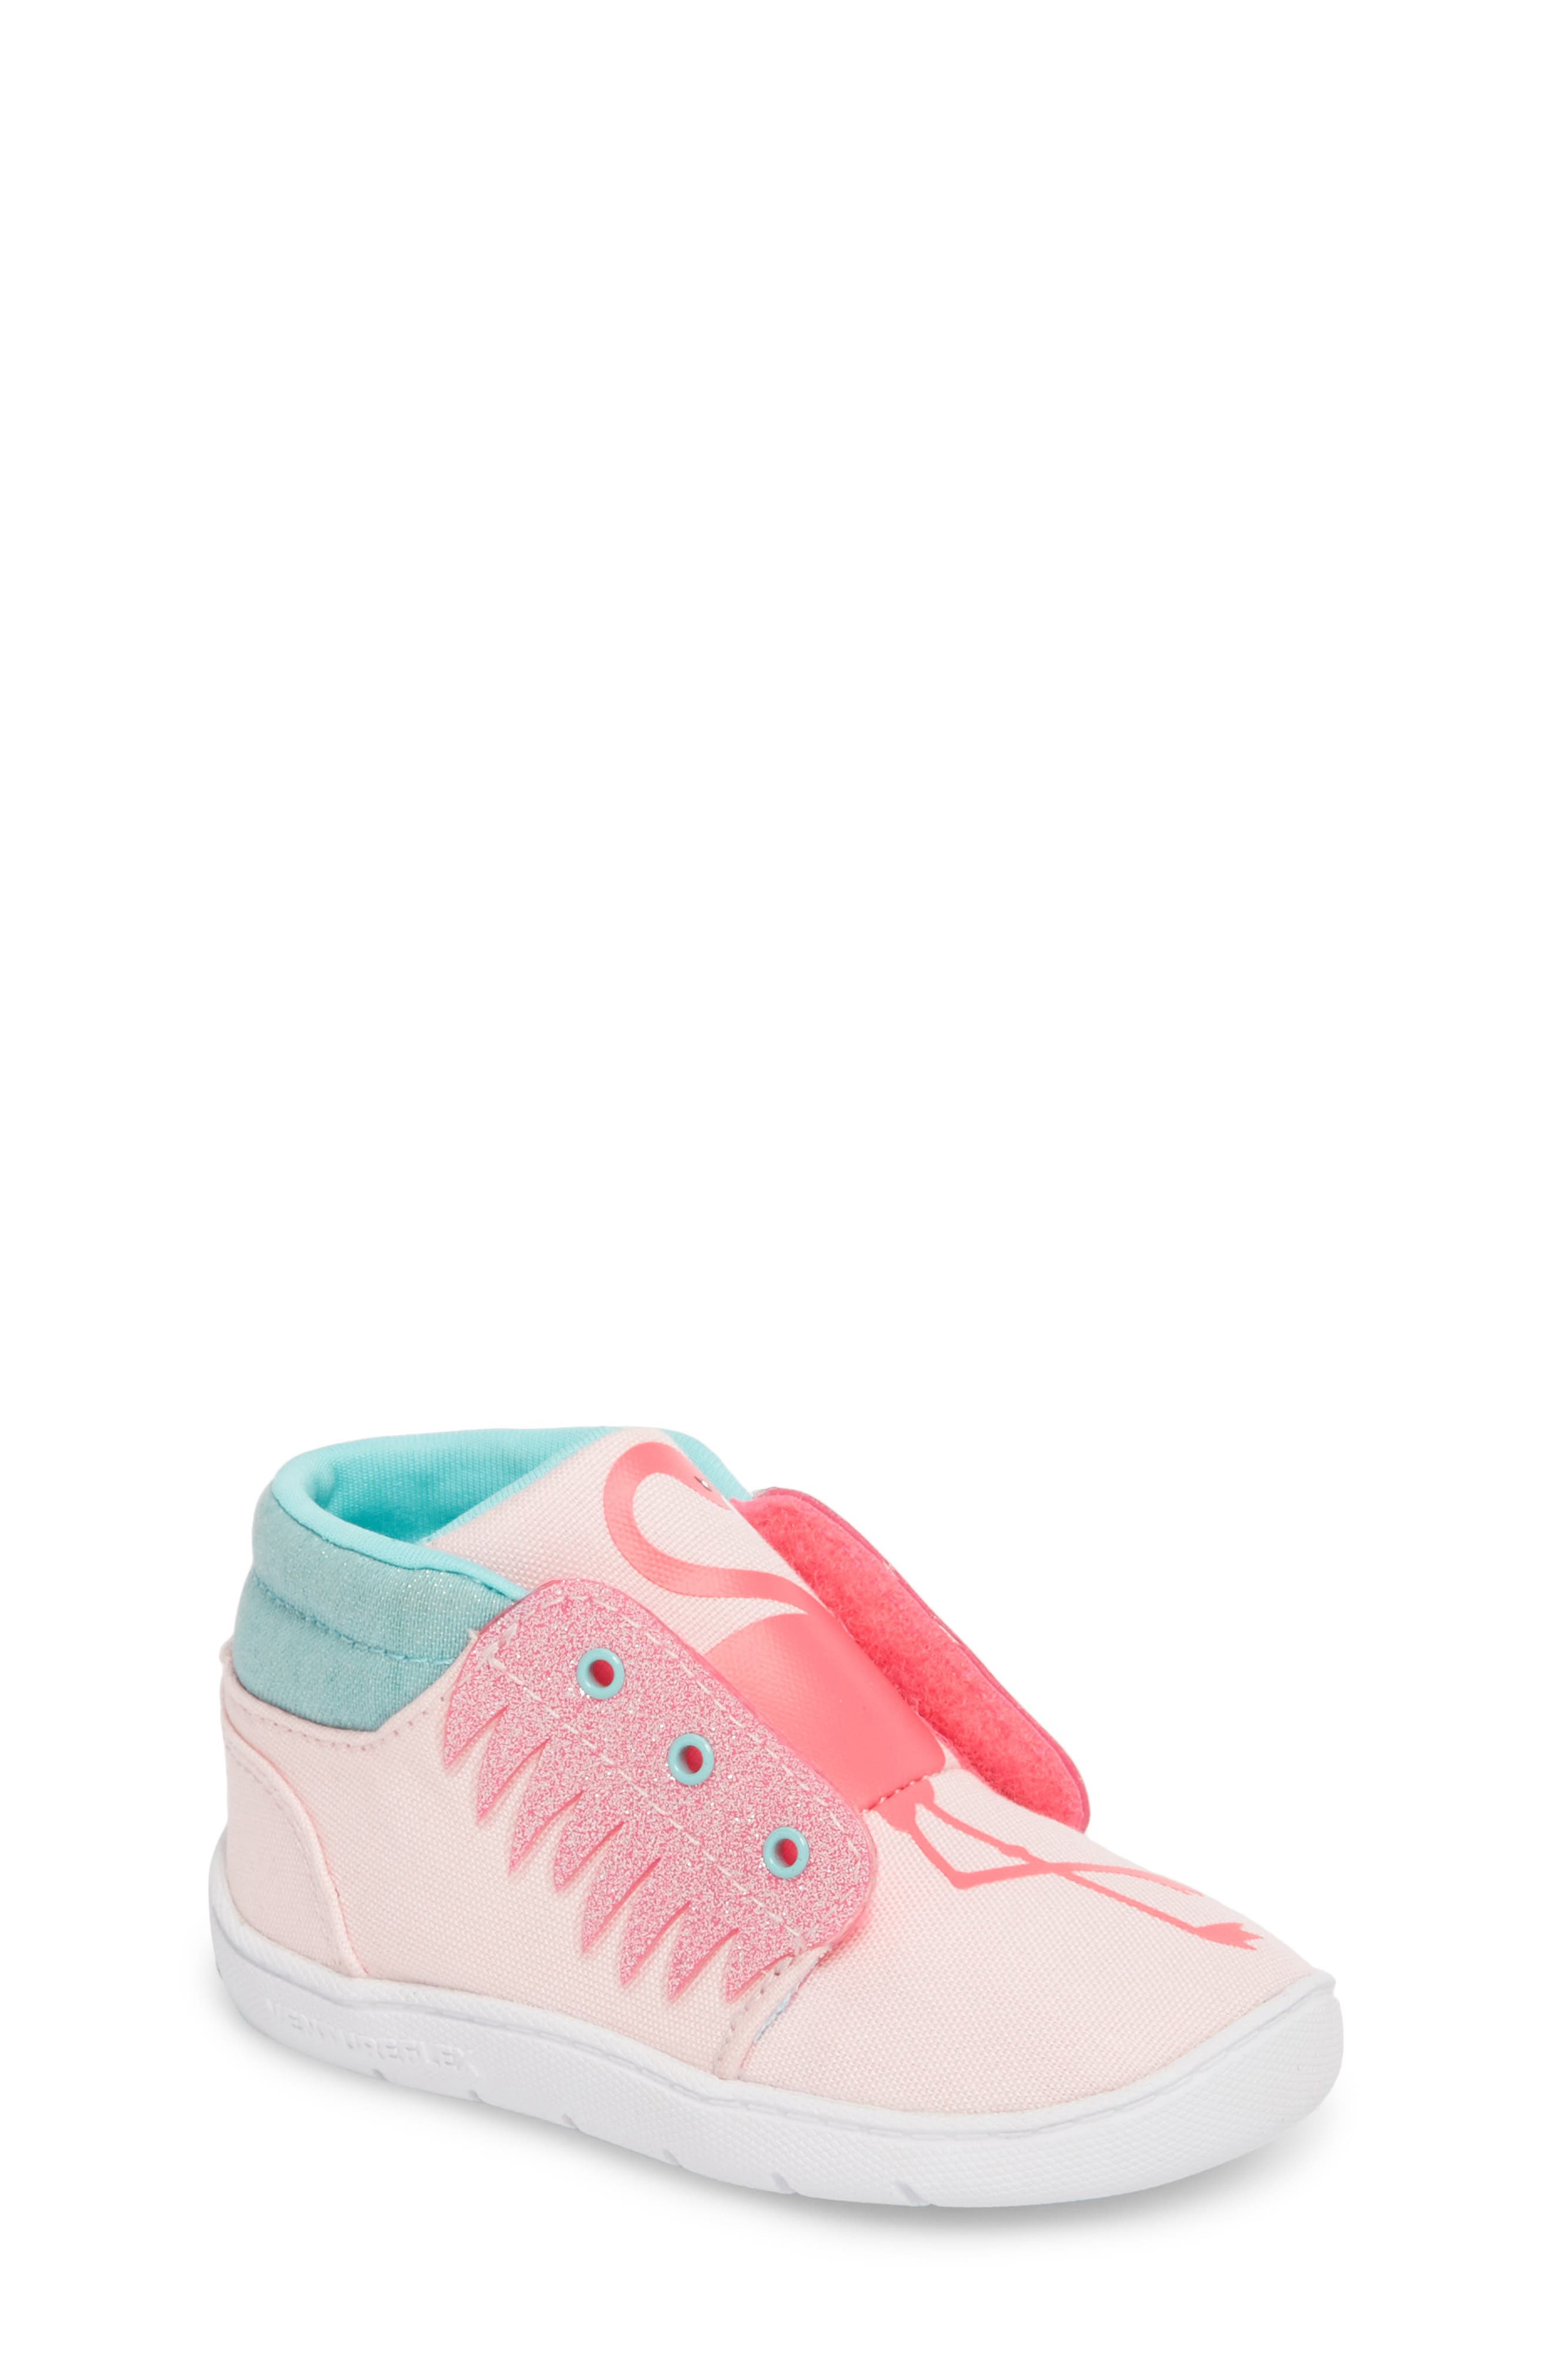 Reebok Ventureflex High Top Critter Sneaker (Baby, Walker & Toddler)